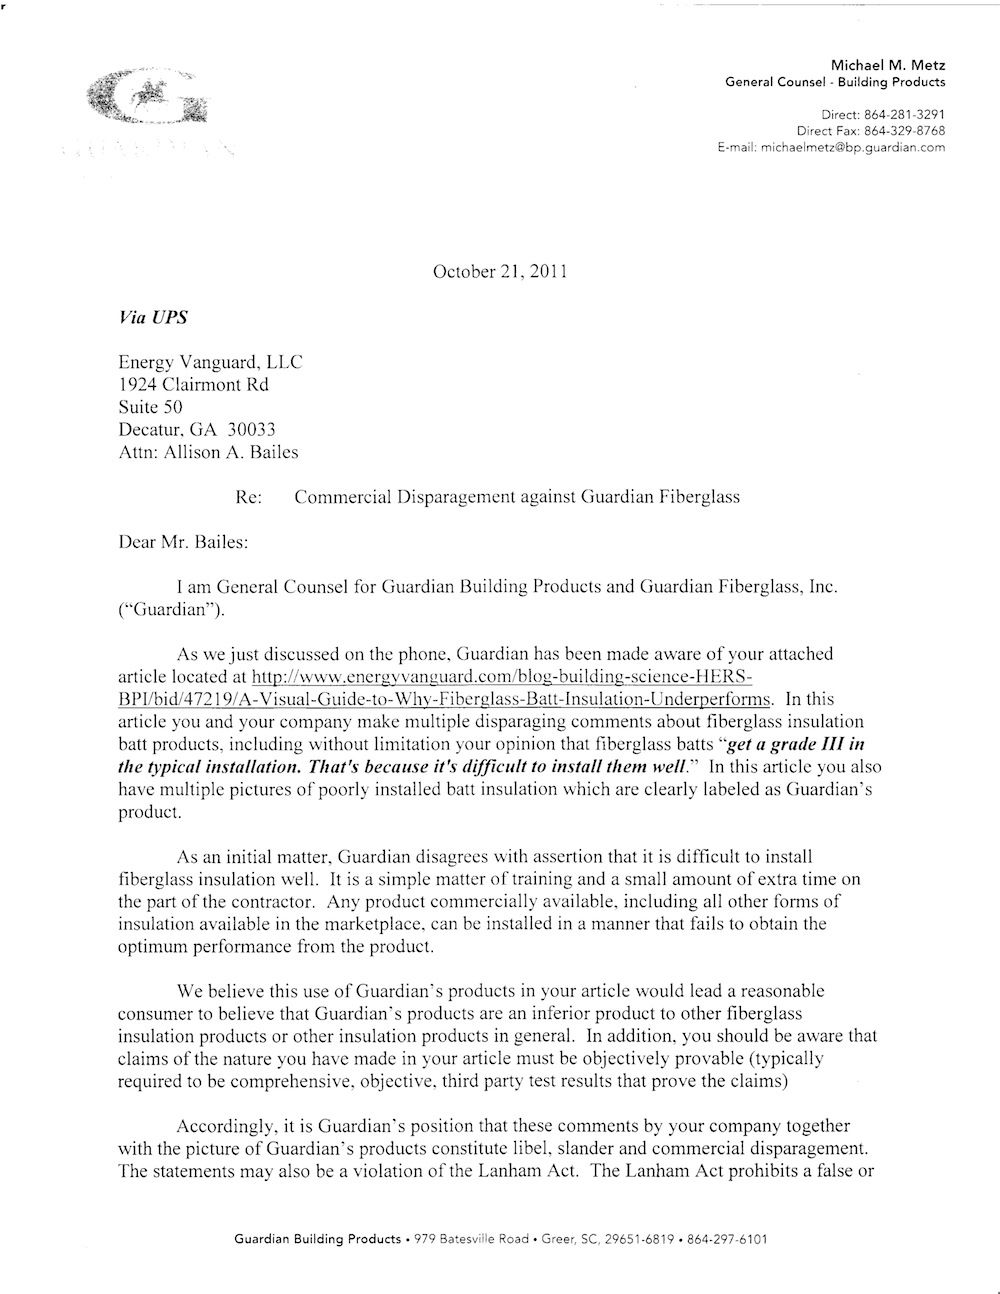 GuardianBuildingProducts    Legal Letter  Real State